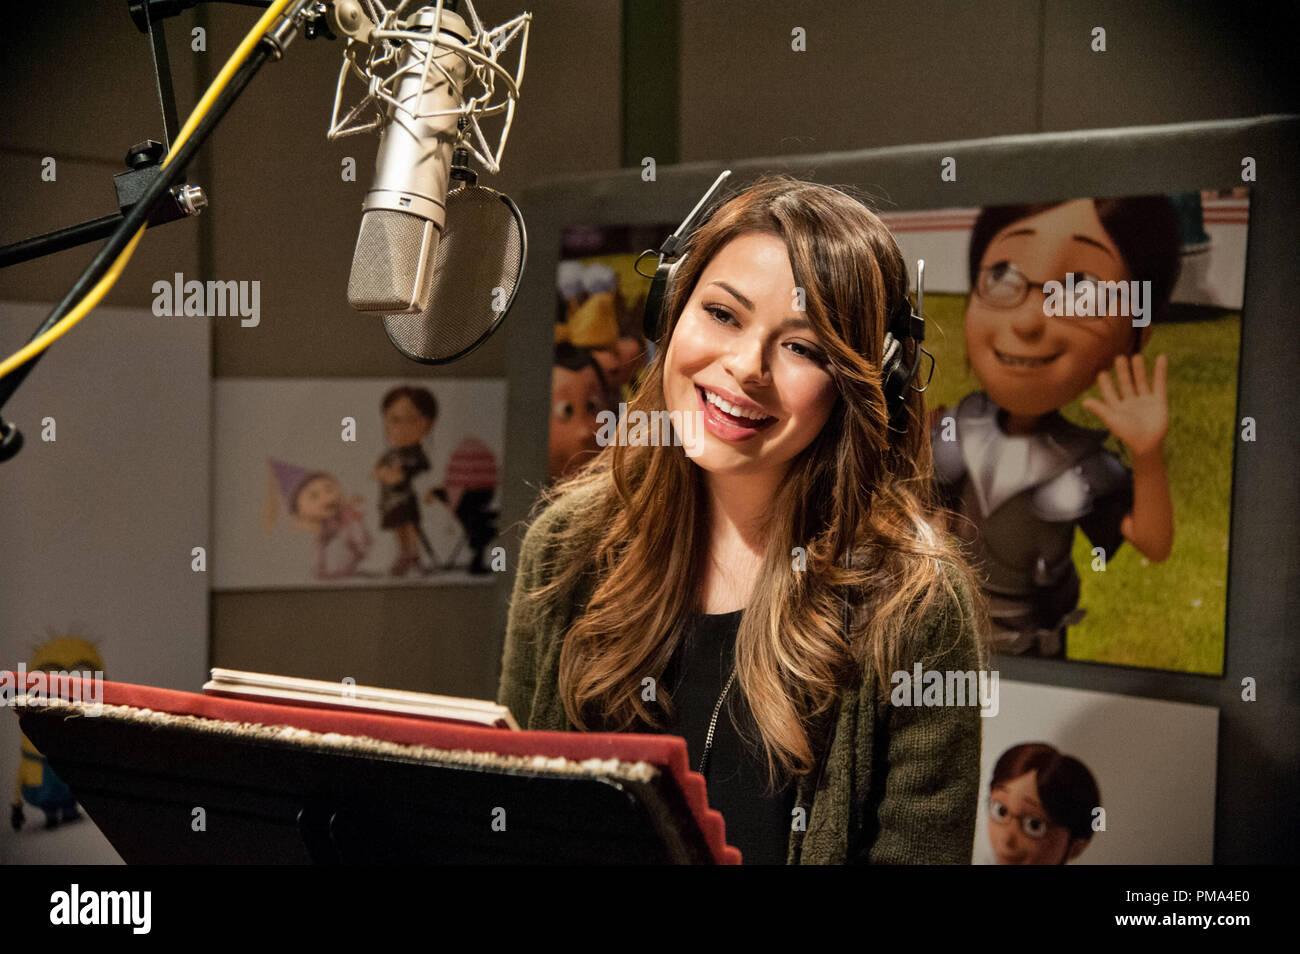 MIRANDA COSGROVE returns to voice eldest child Margo in 'Despicable Me 2', summer 2013's much-anticipated follow-up to Universal Pictures and Illumination Entertainment's blockbuster comedy adventure 'Despicable Me'. - Stock Image